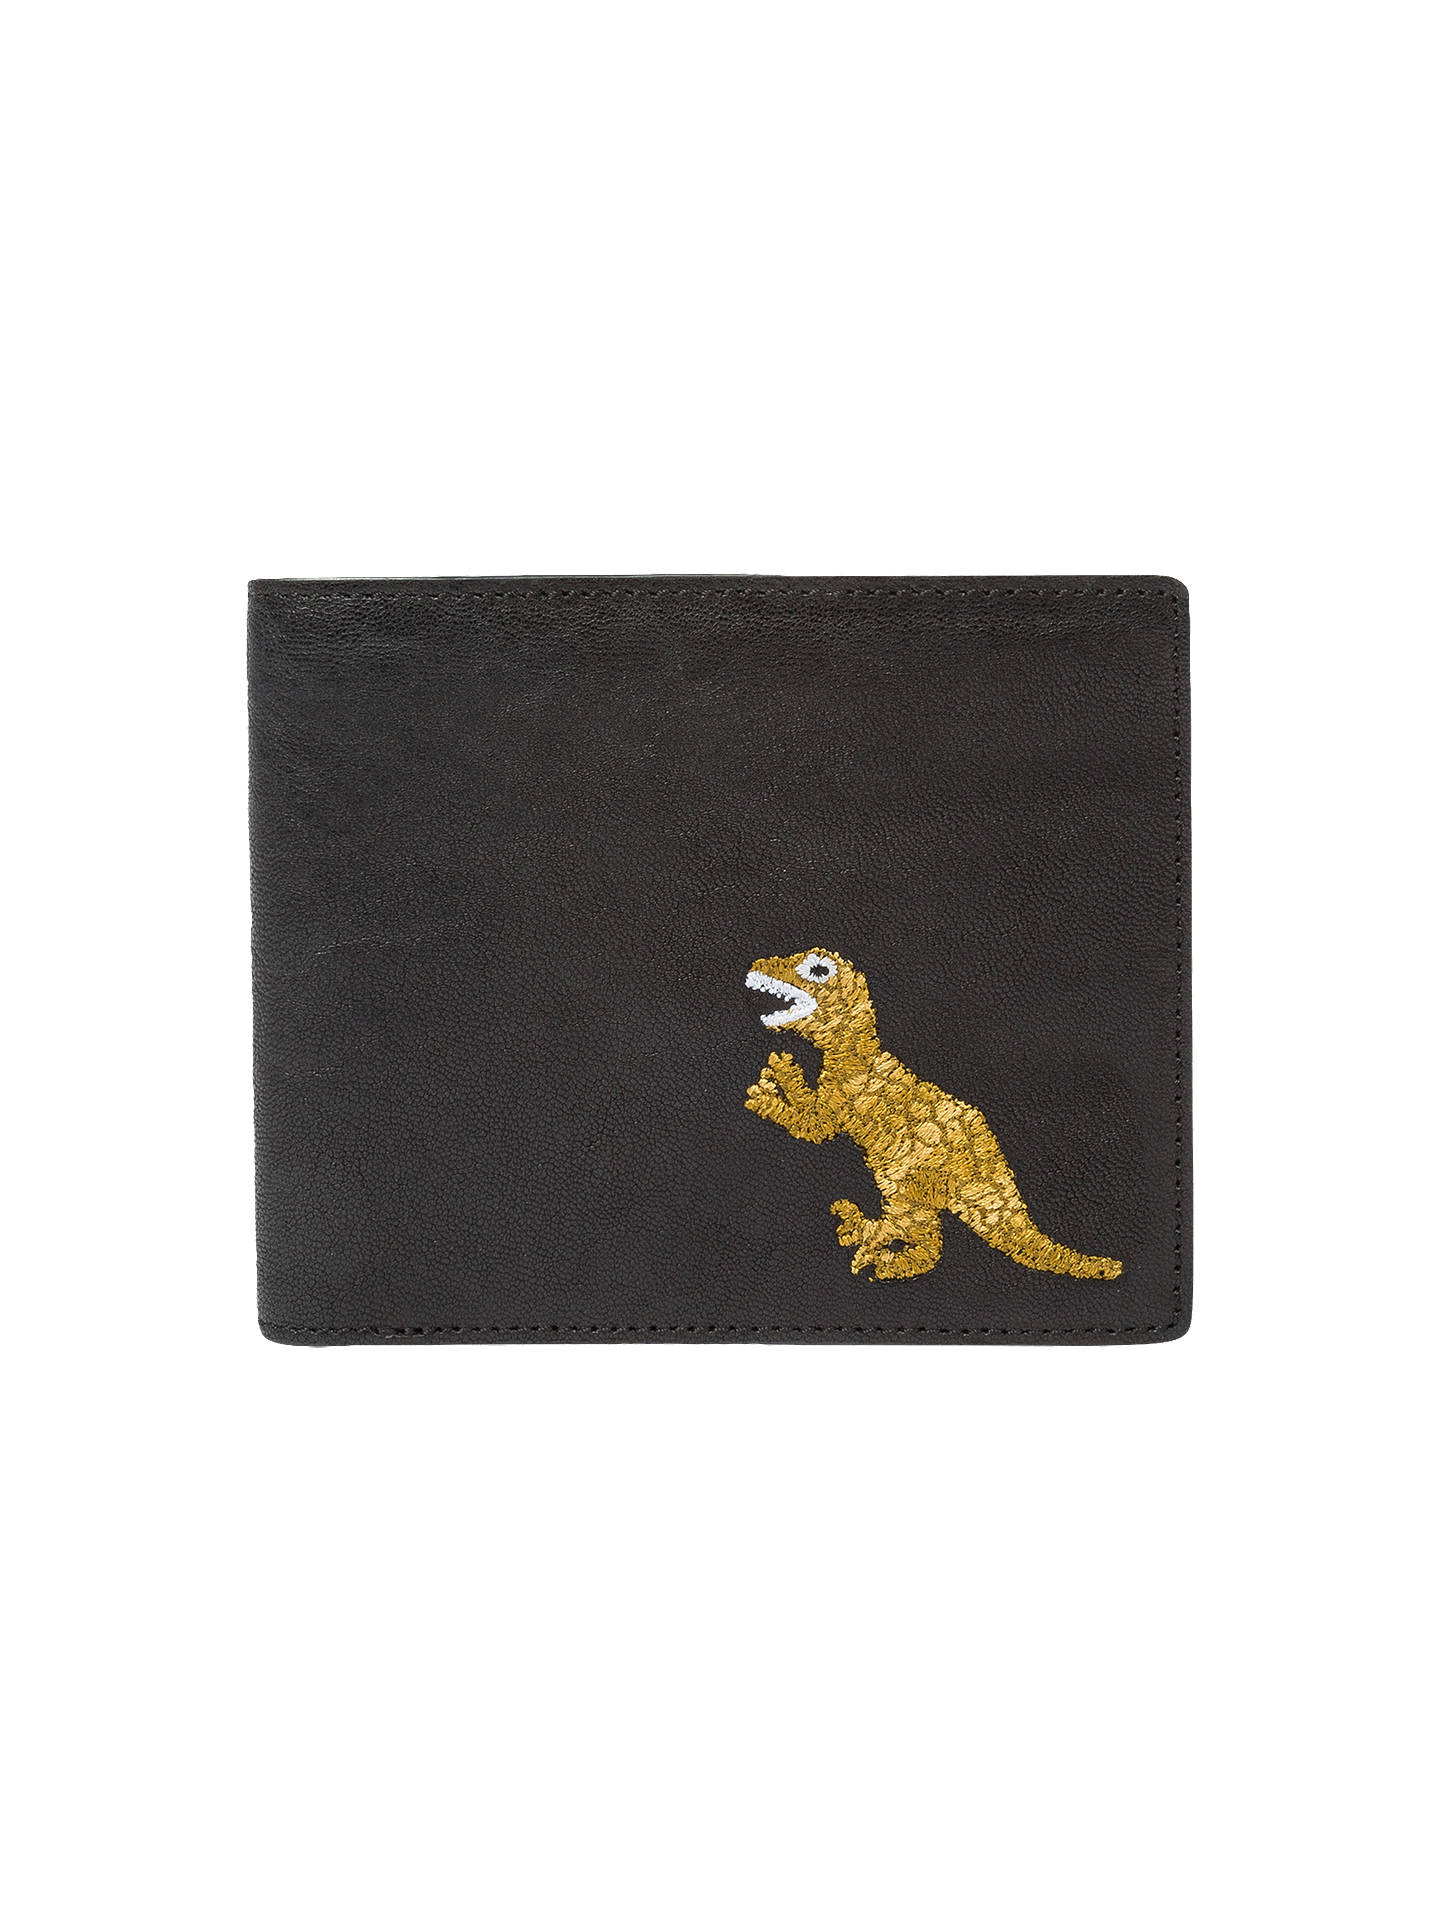 327b68ed1 Buy PS Paul Smith Dino Embroidery Bifold Leather Wallet